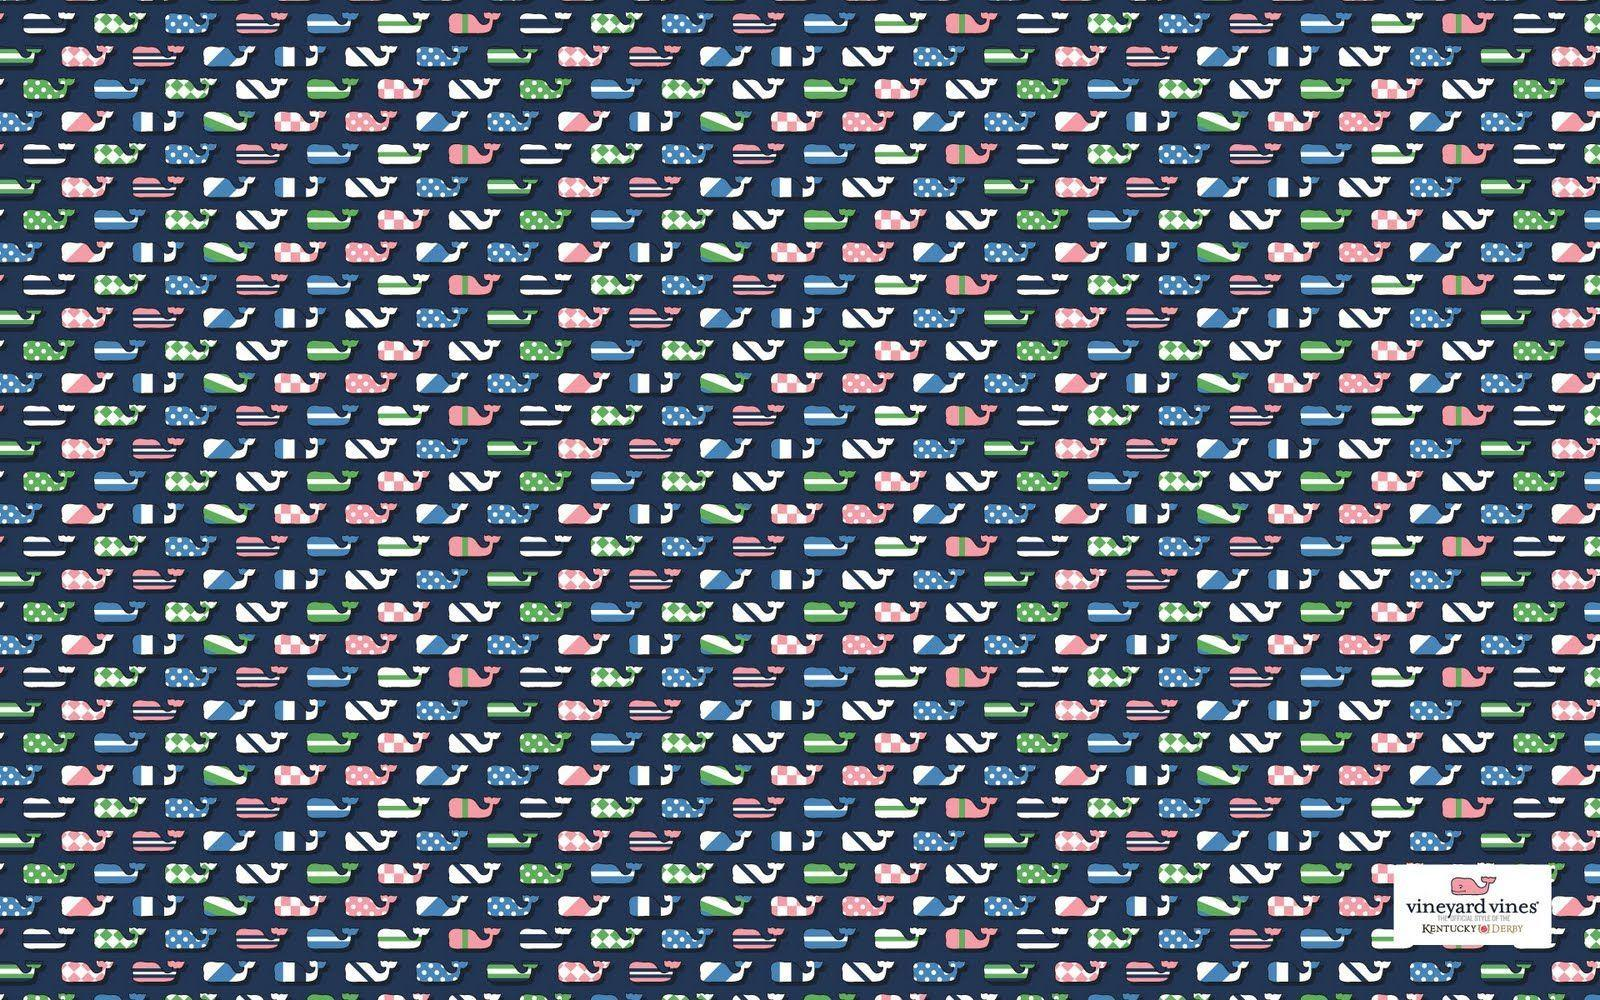 Vineyard Vines Wallpapers 1600x1000